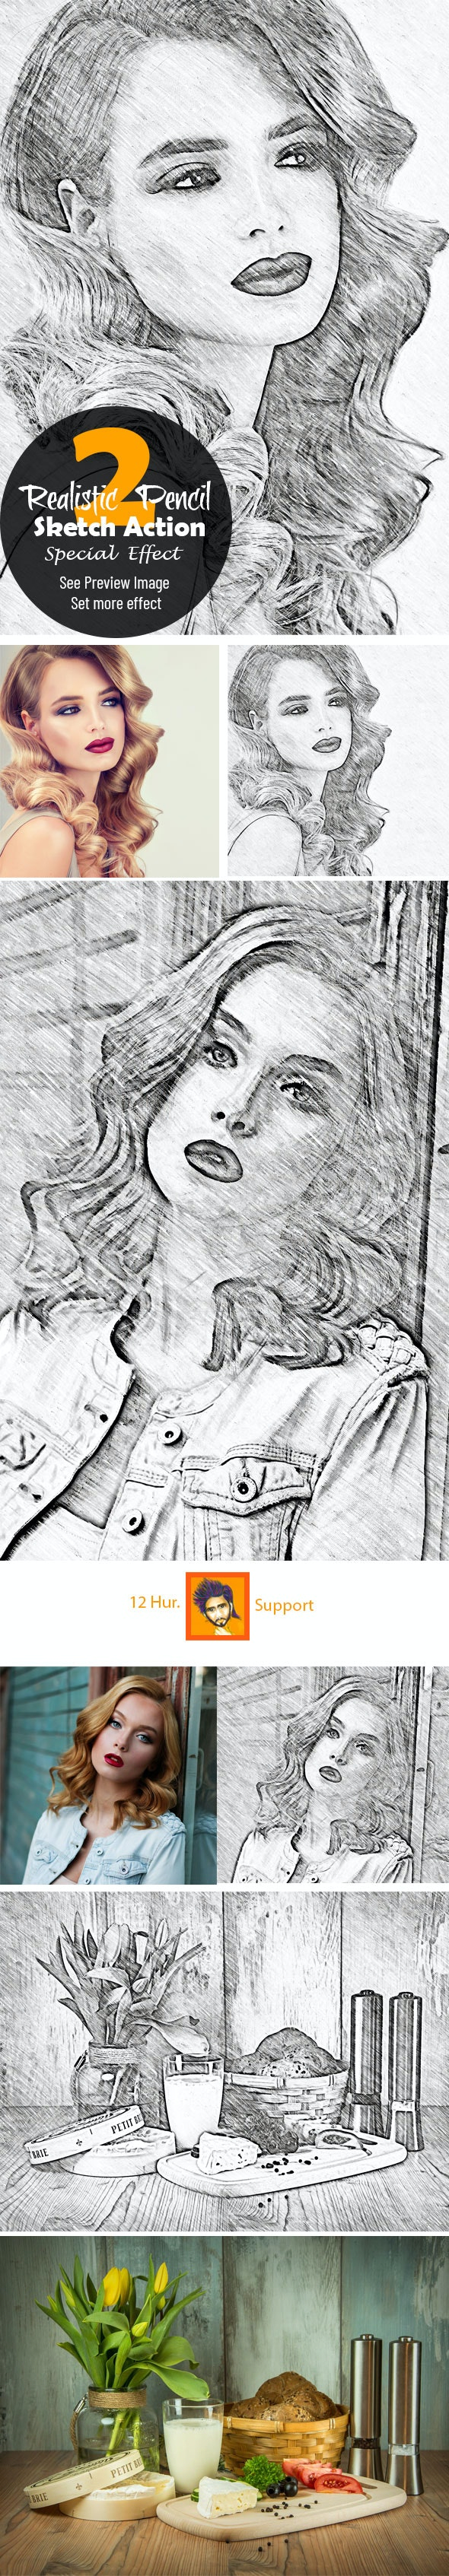 Realistic Pencil Sketch Action 2 - Photo Effects Actions